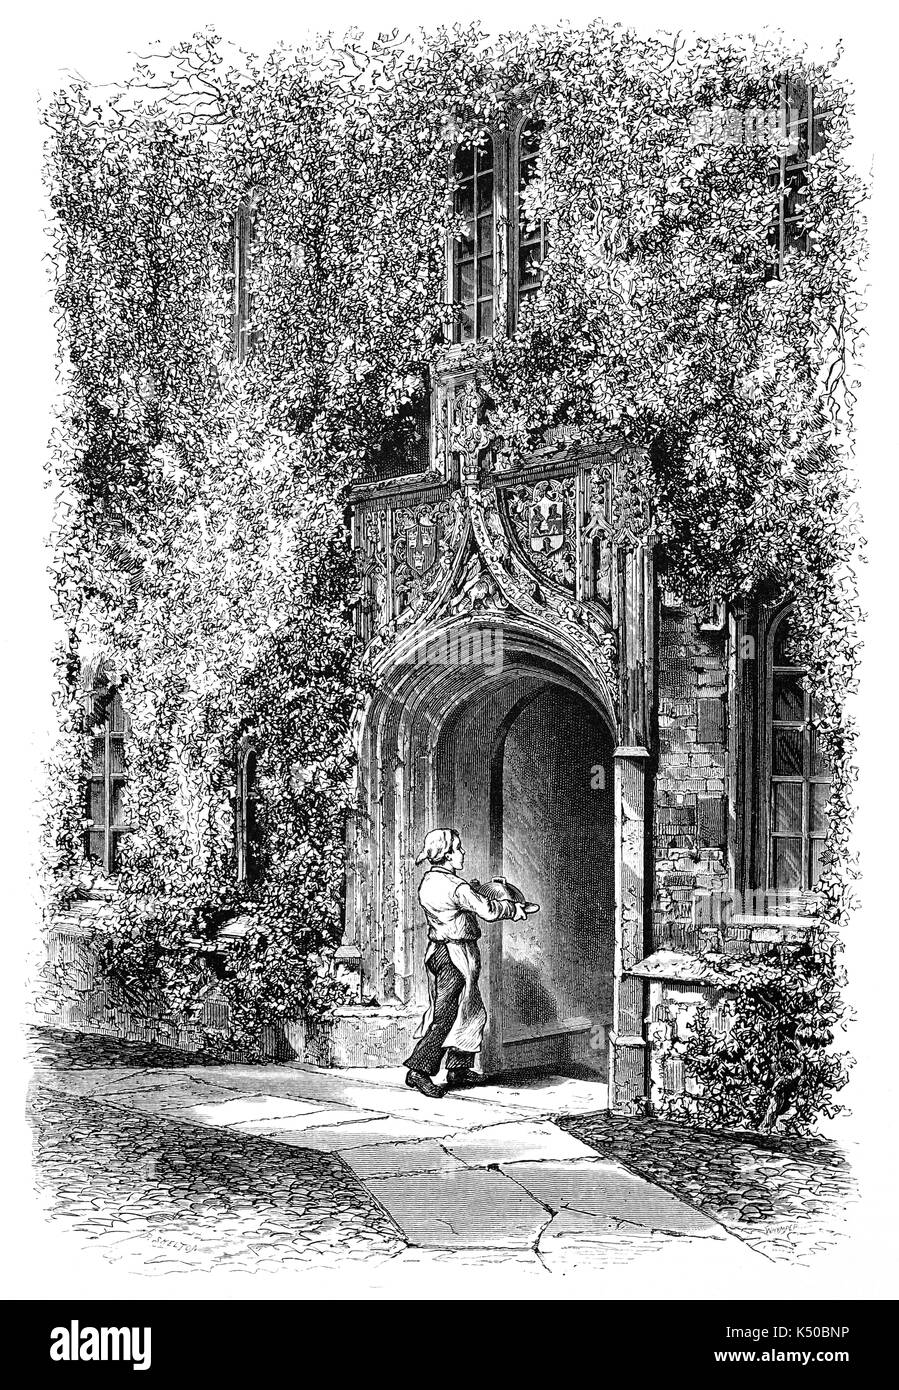 1870: Cook entering the Gateway of Jesus College, established 1516,  is a constituent college of the University of Cambridge, England. The college's full name is The College of the Blessed Virgin Mary, Saint John the Evangelist and the glorious Virgin Saint Radegund. Its common name comes from the name of its chapel, Jesus Chapel. England - Stock Image